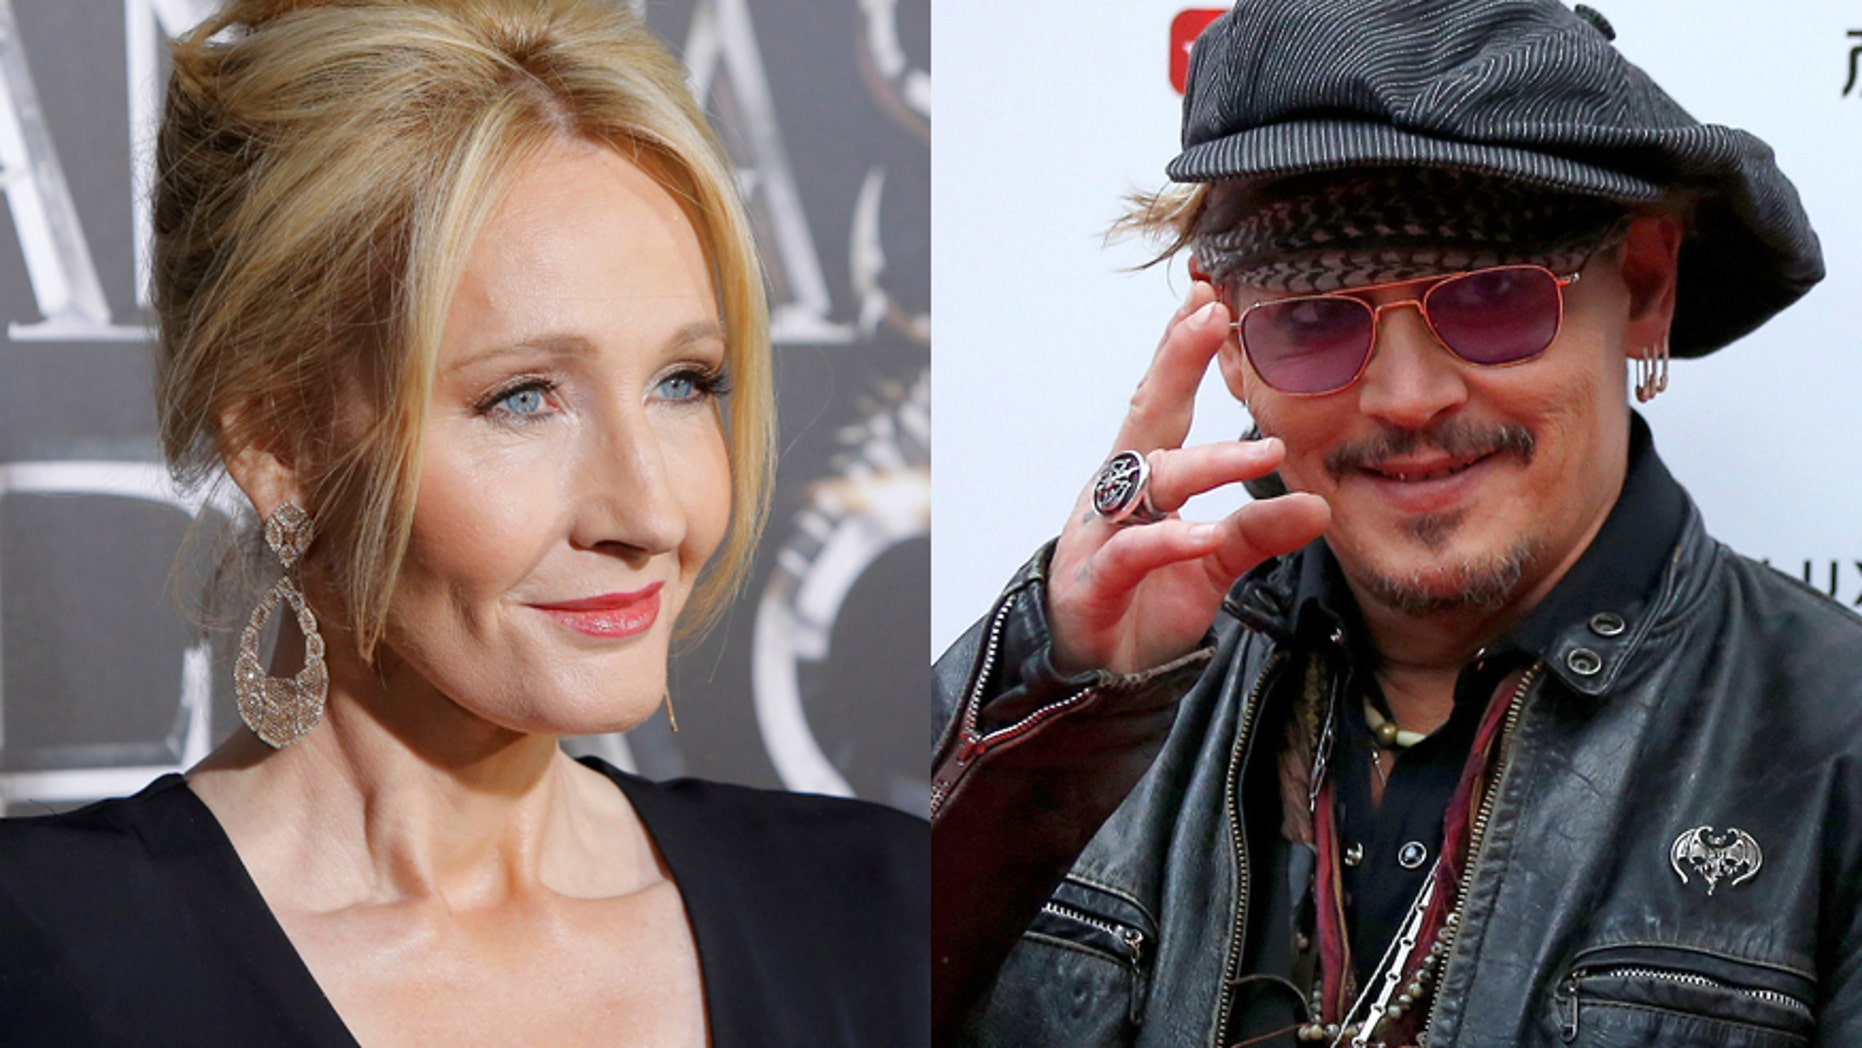 J.K. Rowling (left) and actor Johnny Depp.